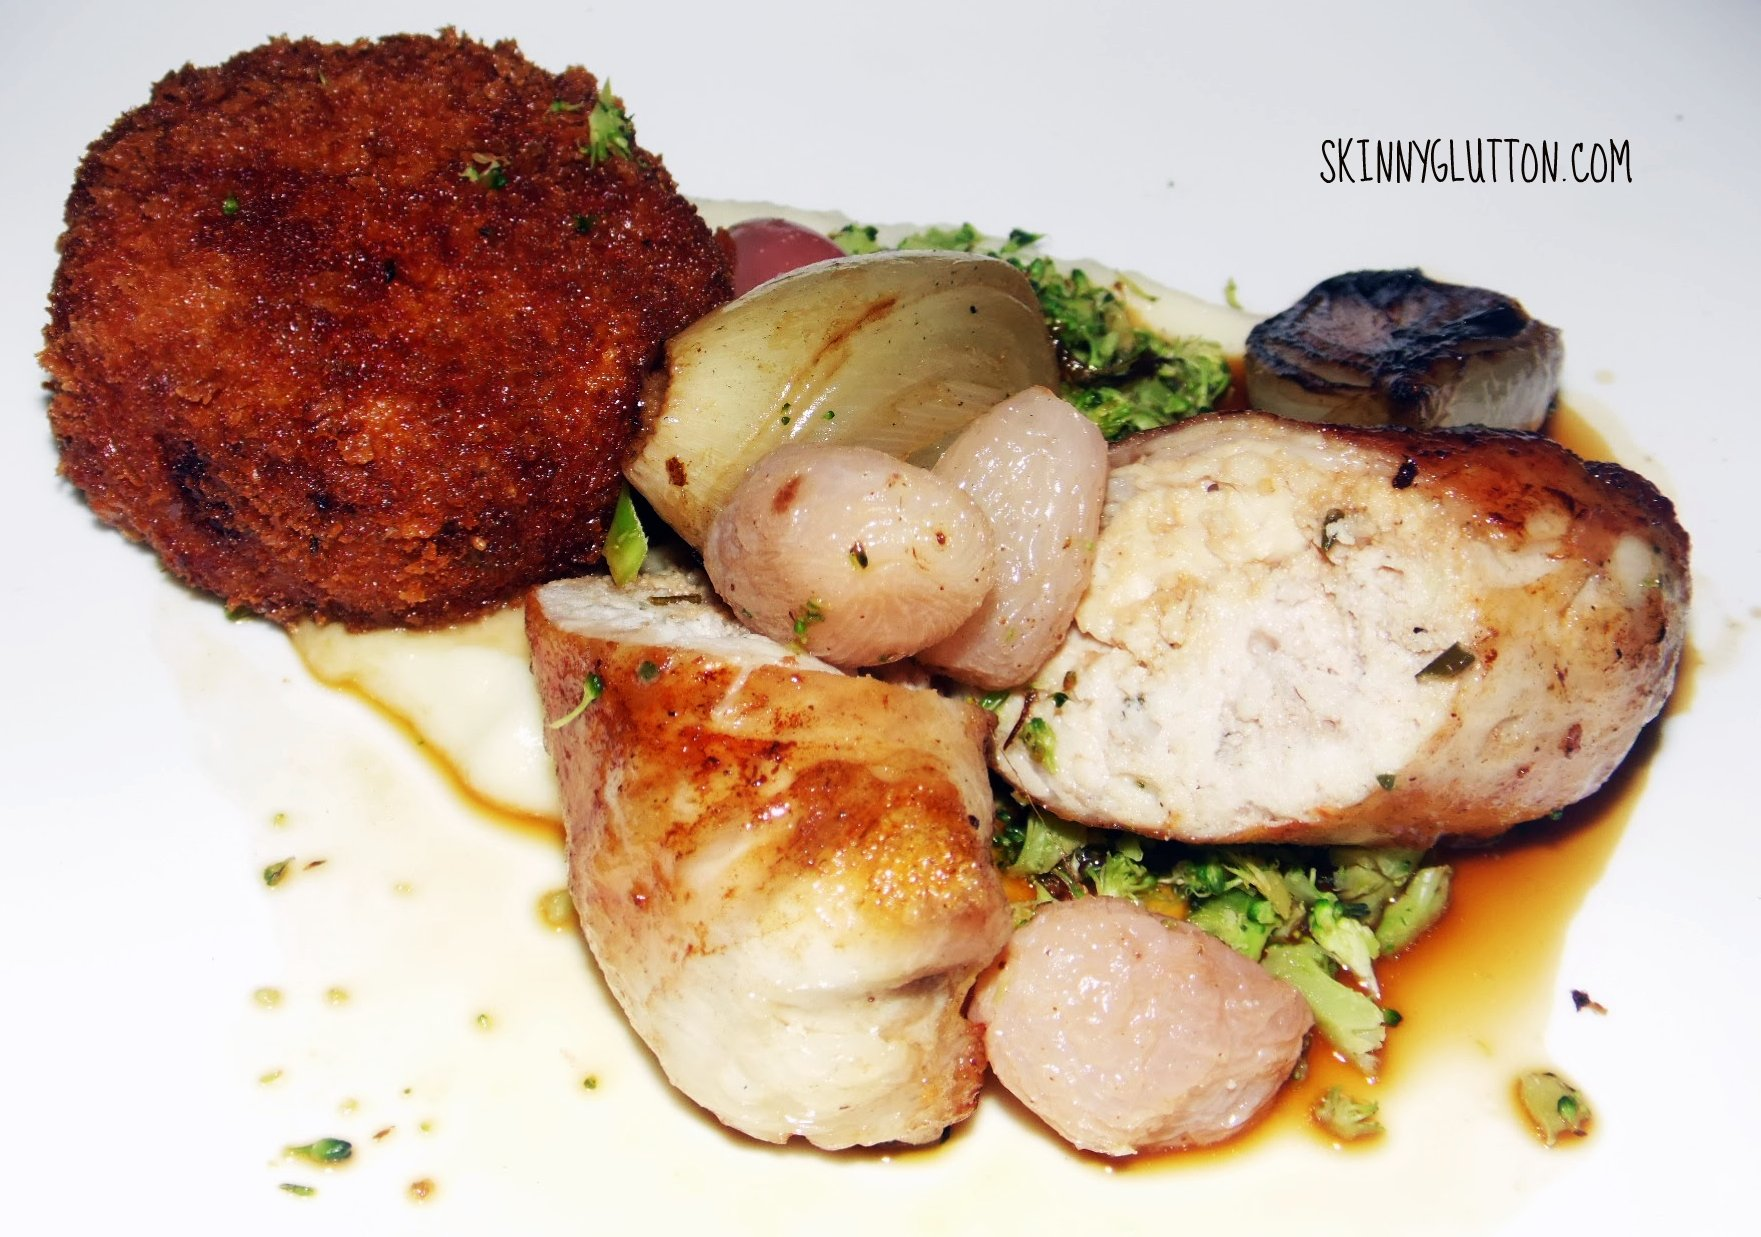 Rabbit, croquette, grape and onion